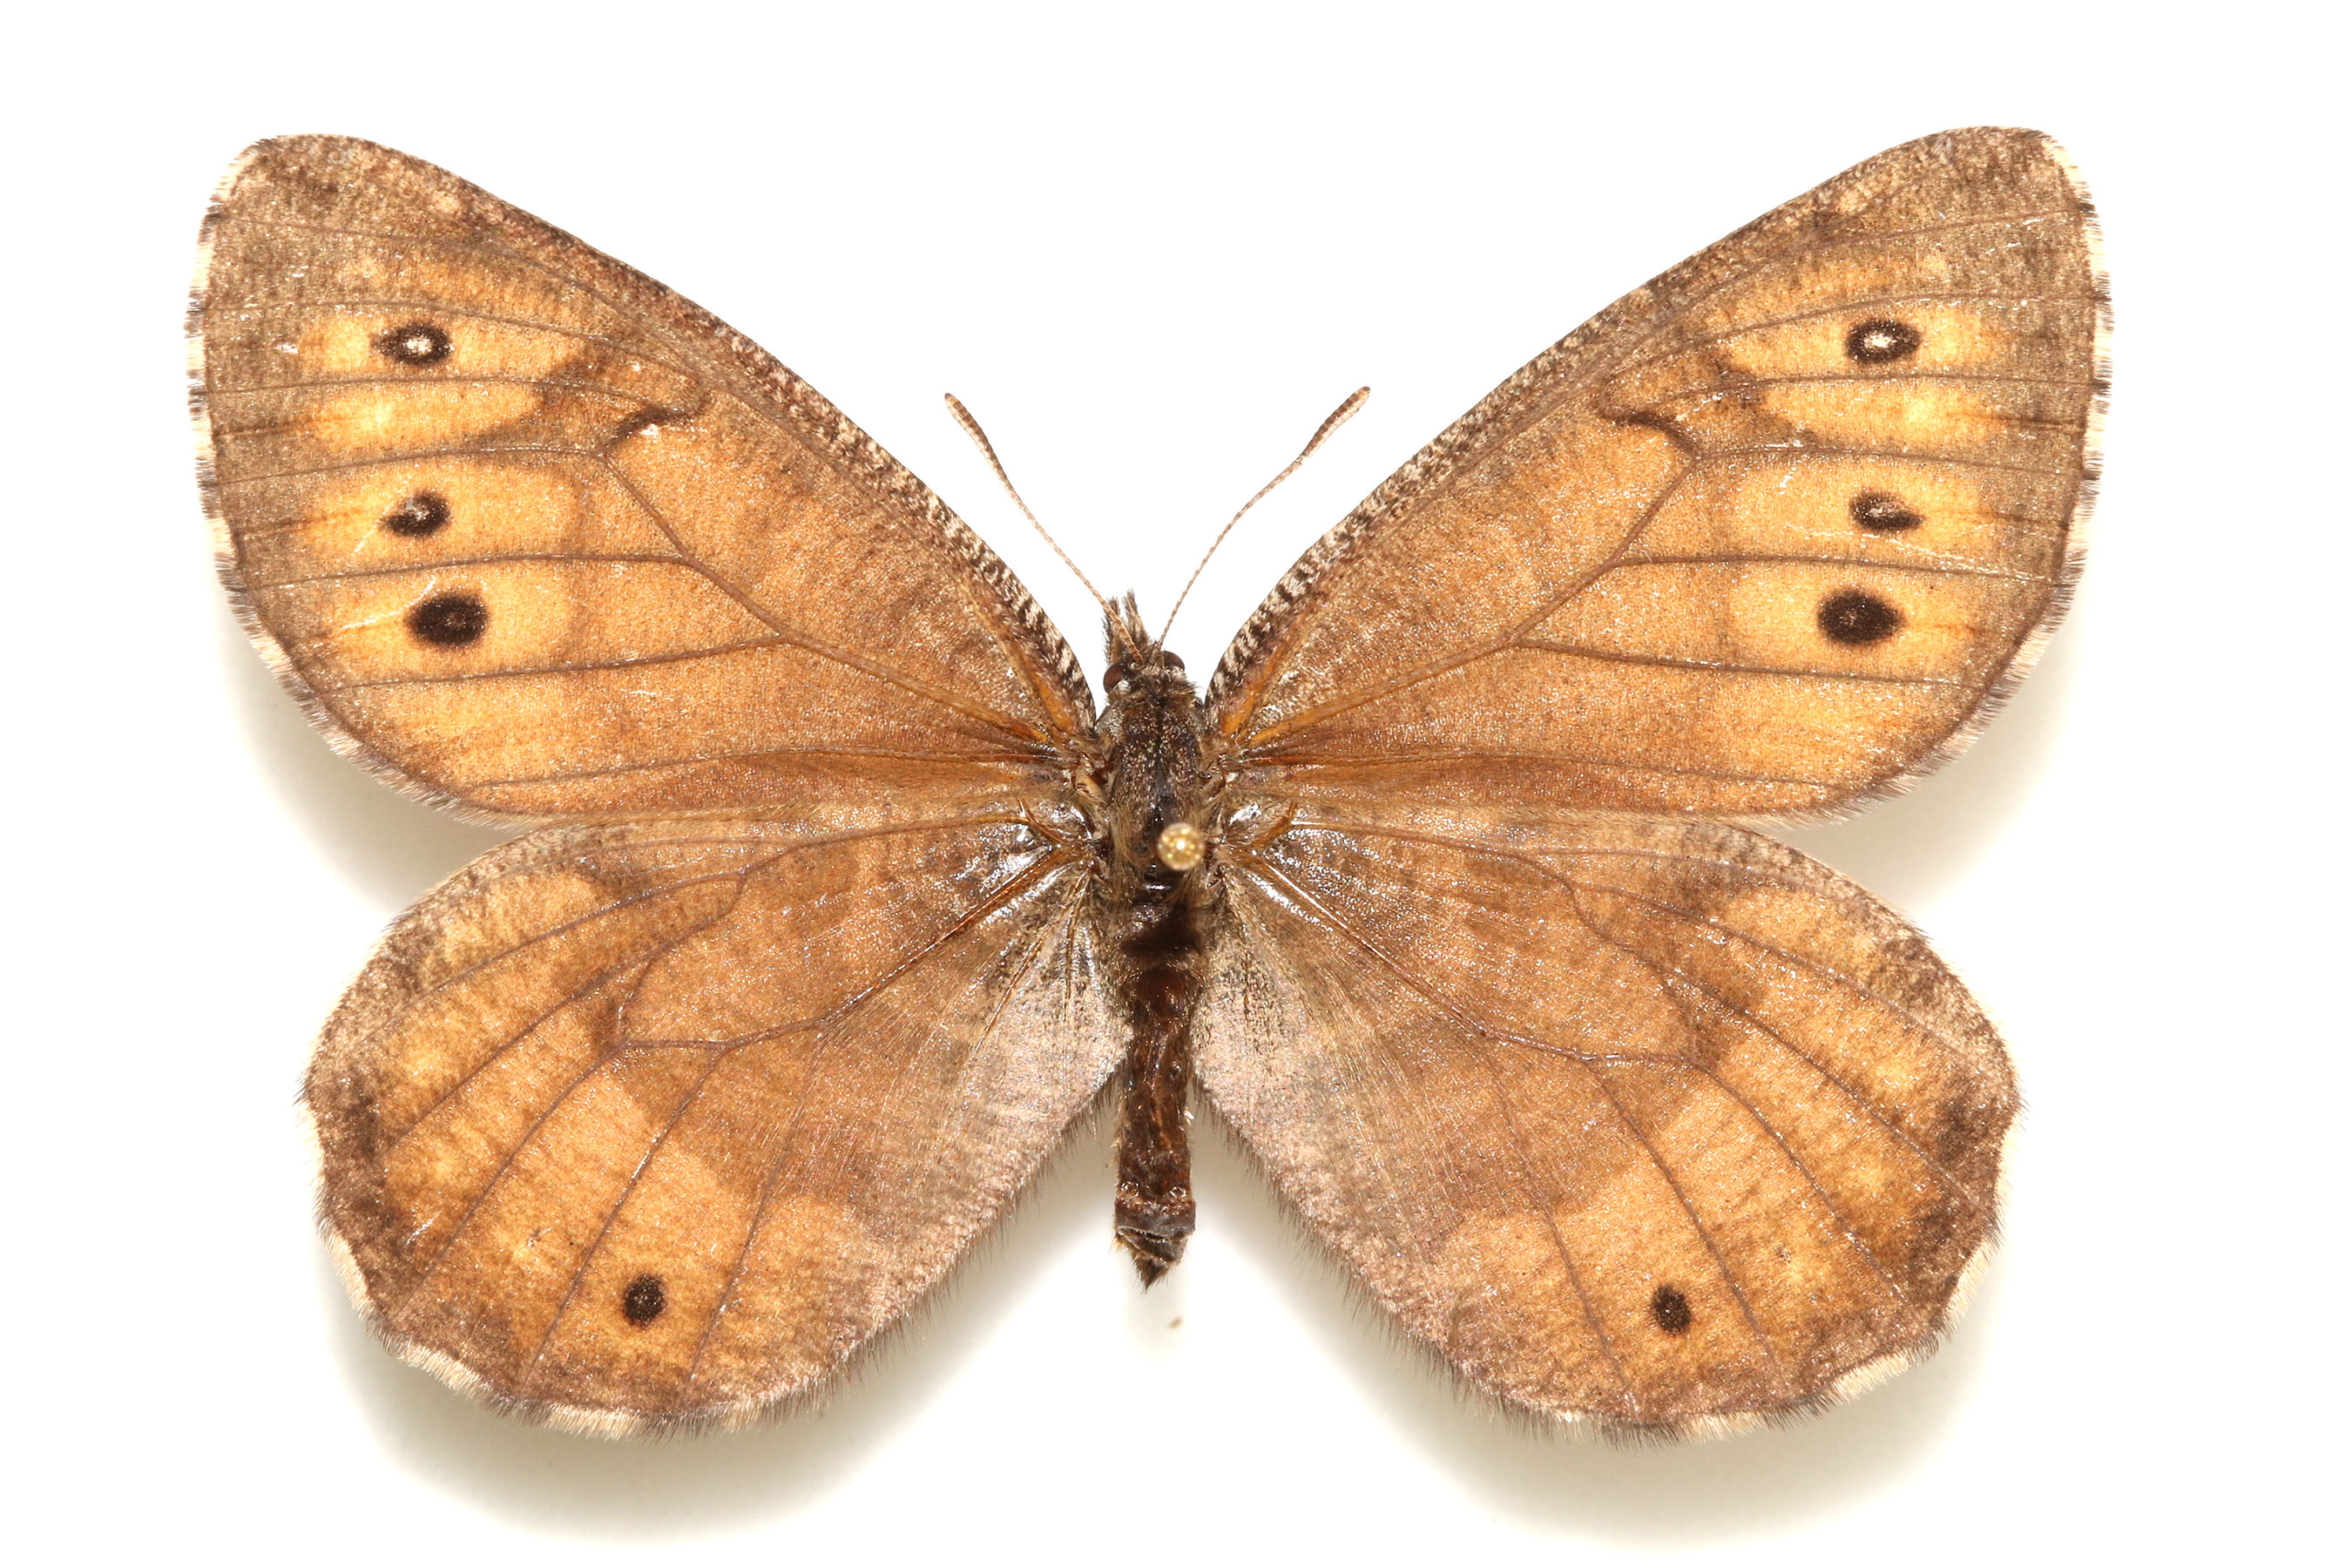 The top side of the Alaskan butterfly